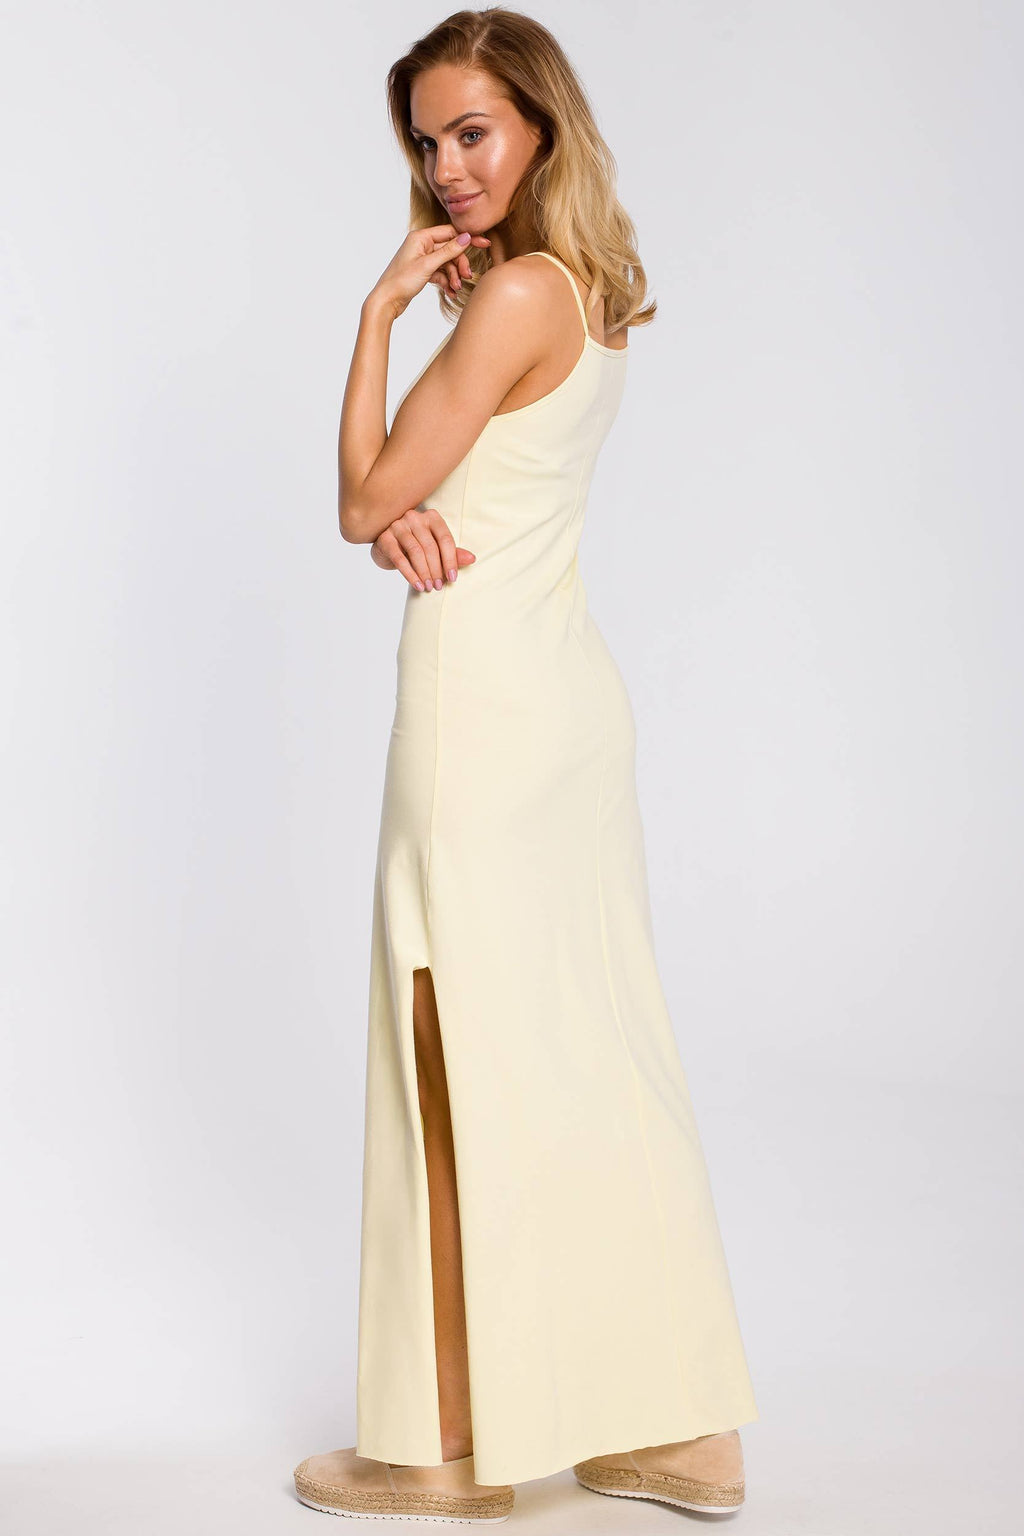 Maxi Yellow Cotton Dress With Spaghetti Straps And A Side Slit